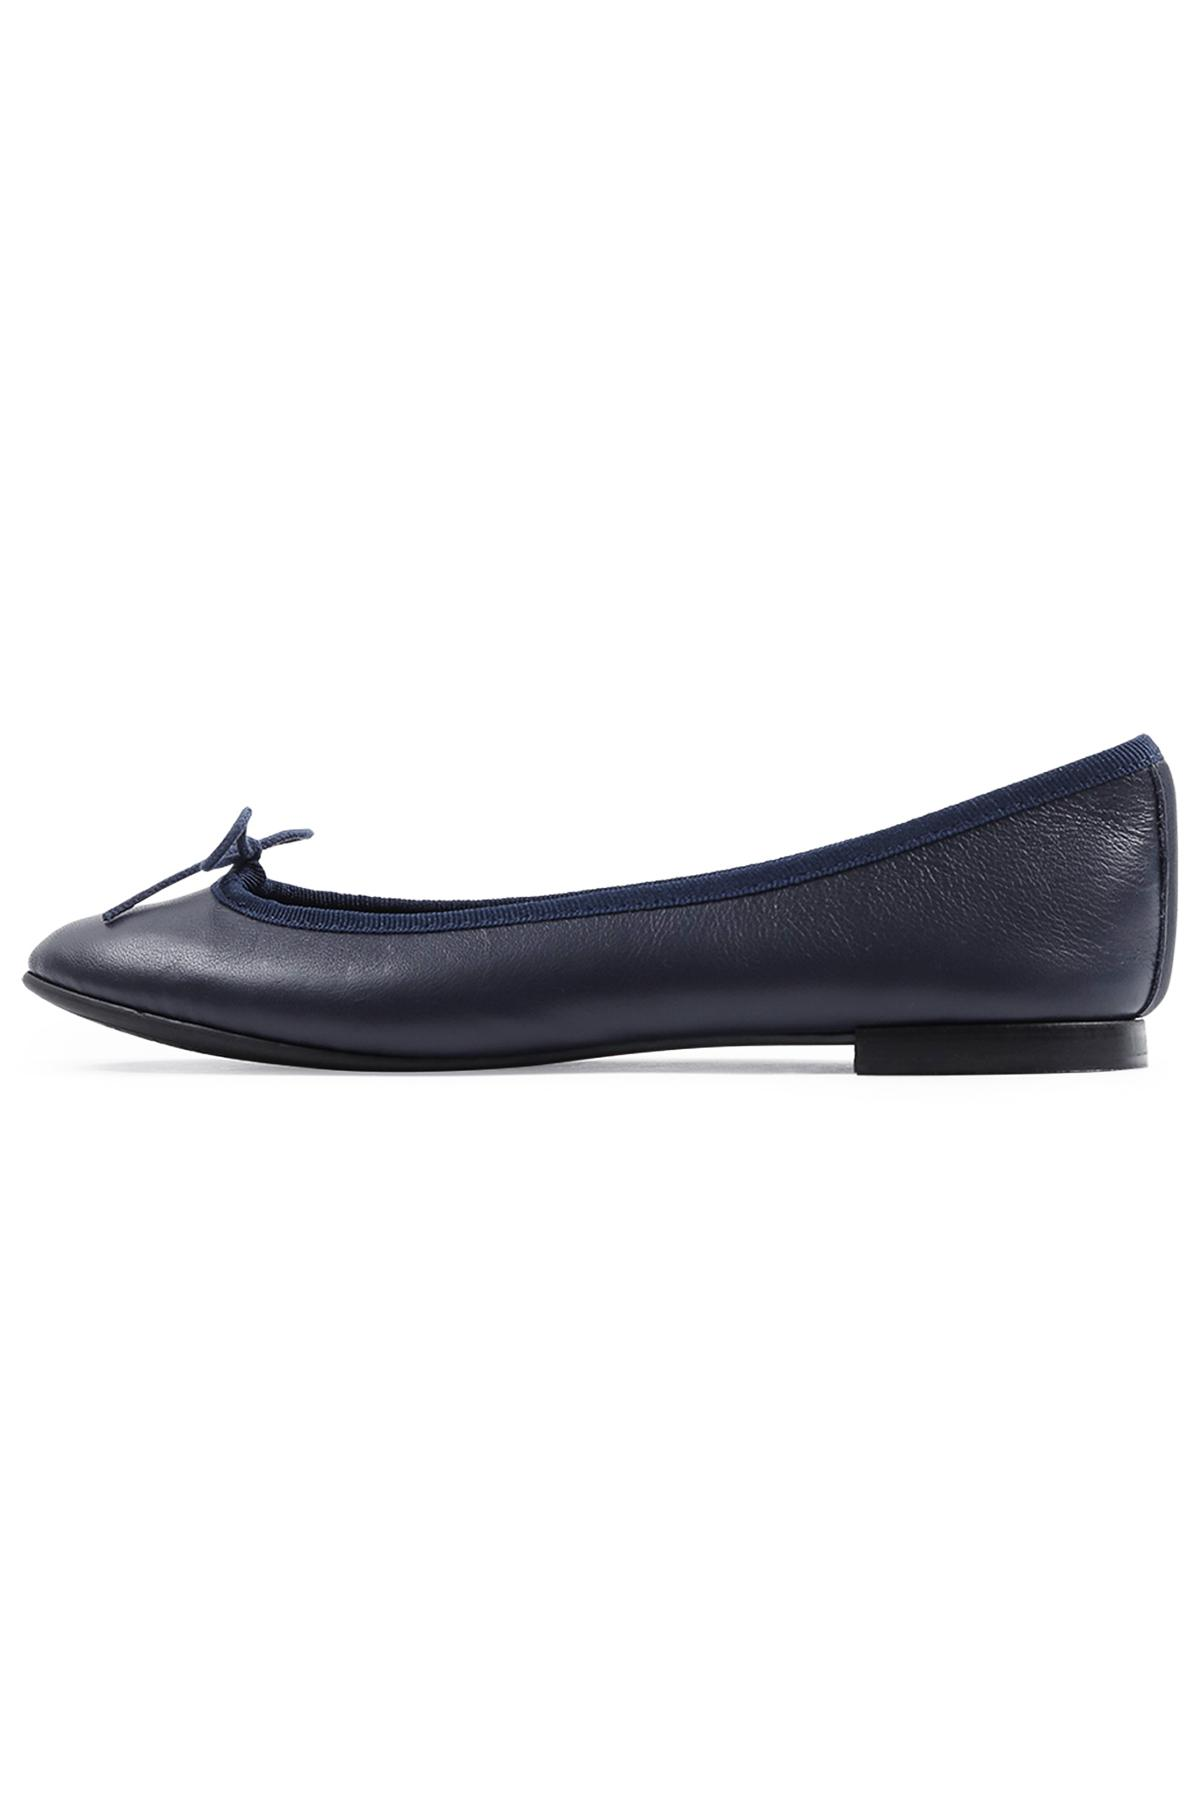 52700bad2cc Lyst - Repetto Lili Ballerina Flat In Classic Navy in Blue